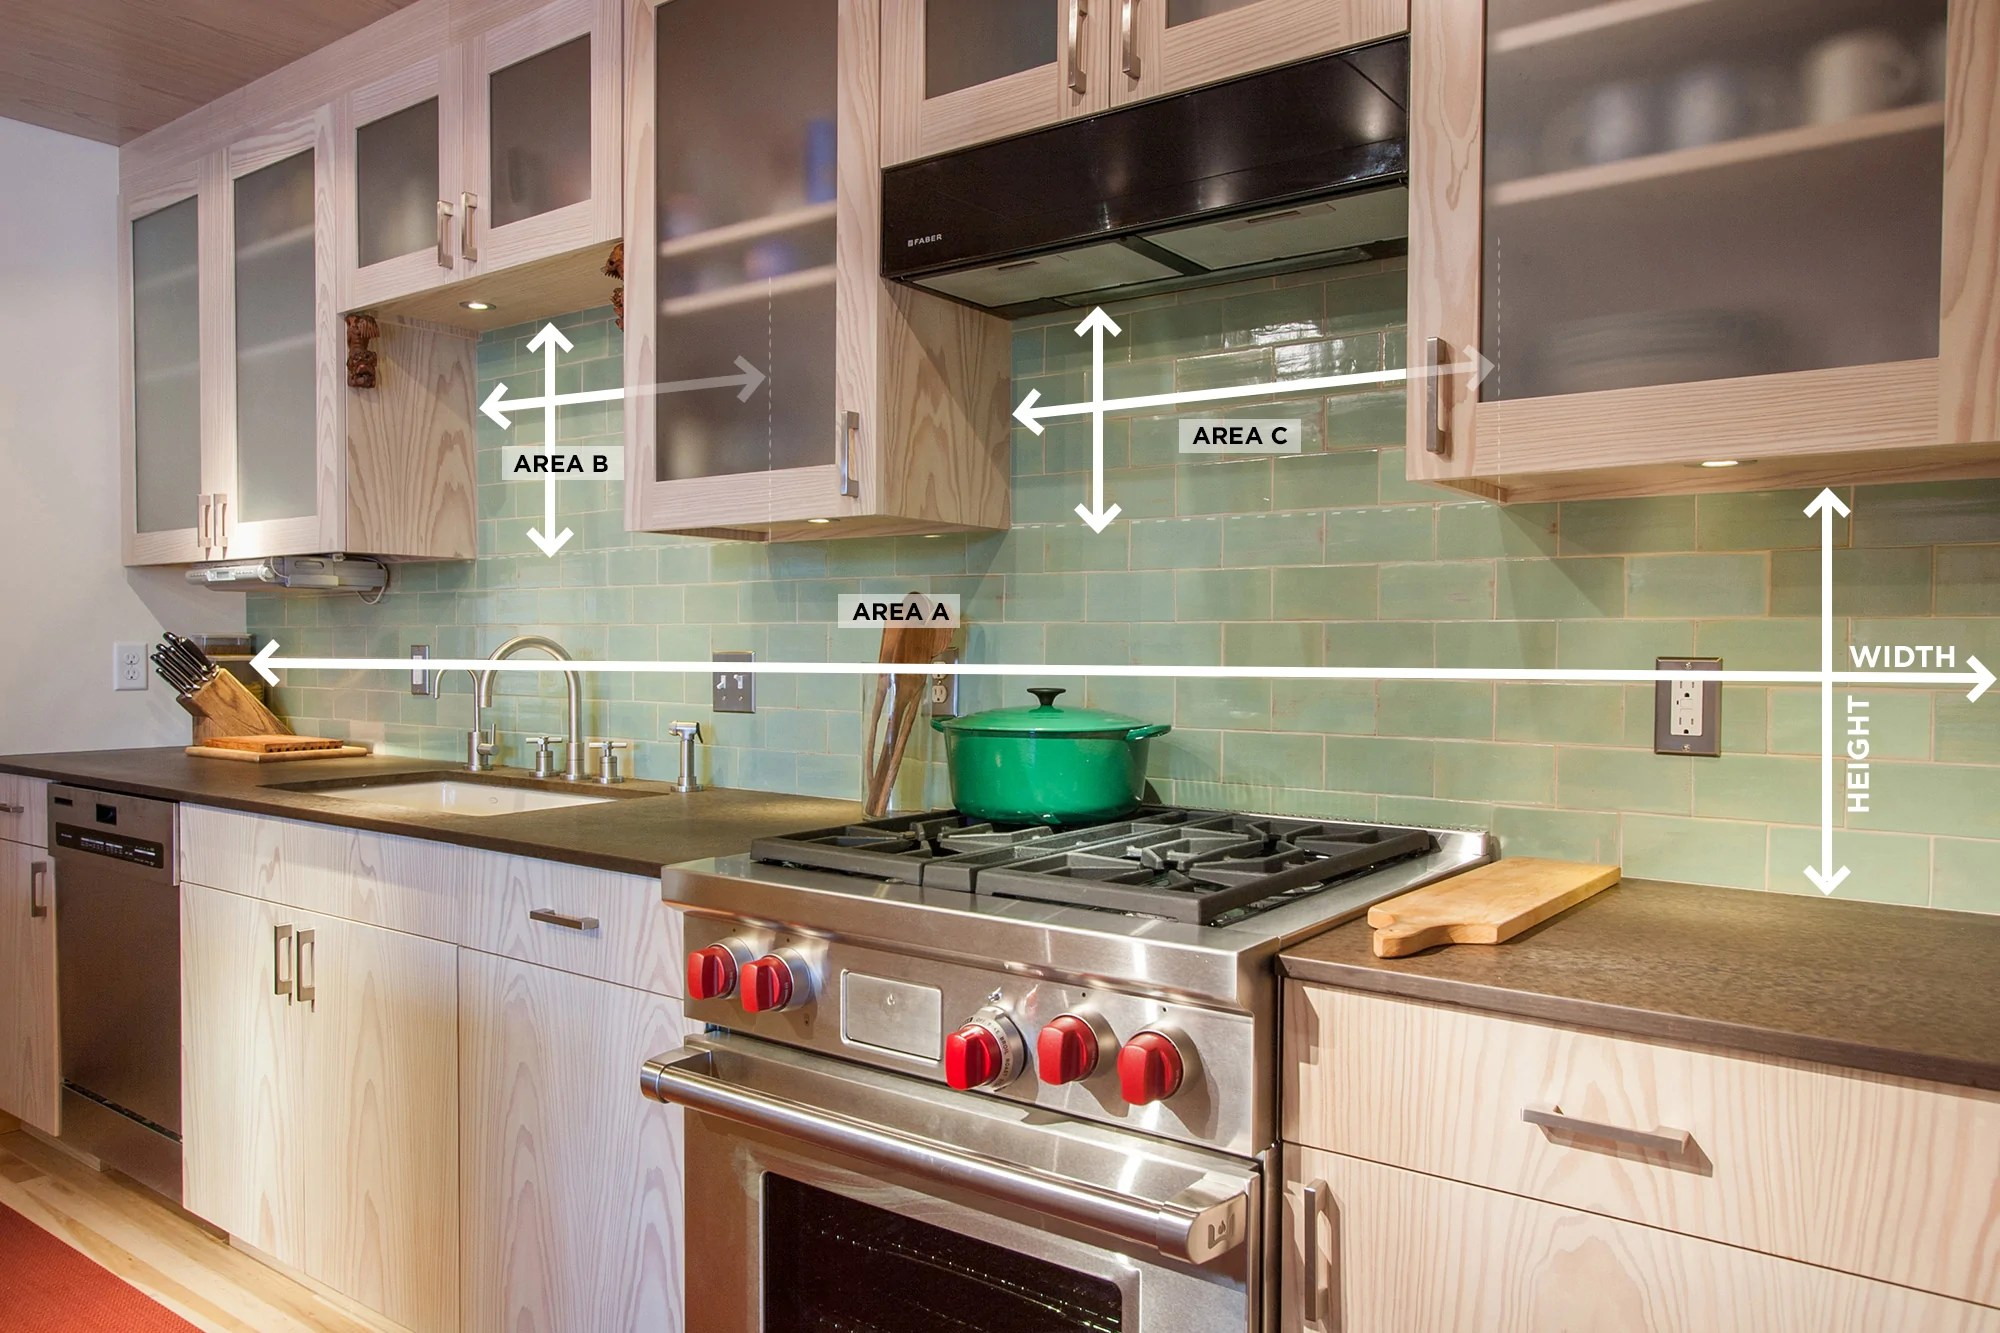 Pictures Of Backsplash In Kitchens How To Measure Your Kitchen Backsplash Mercury Mosaics